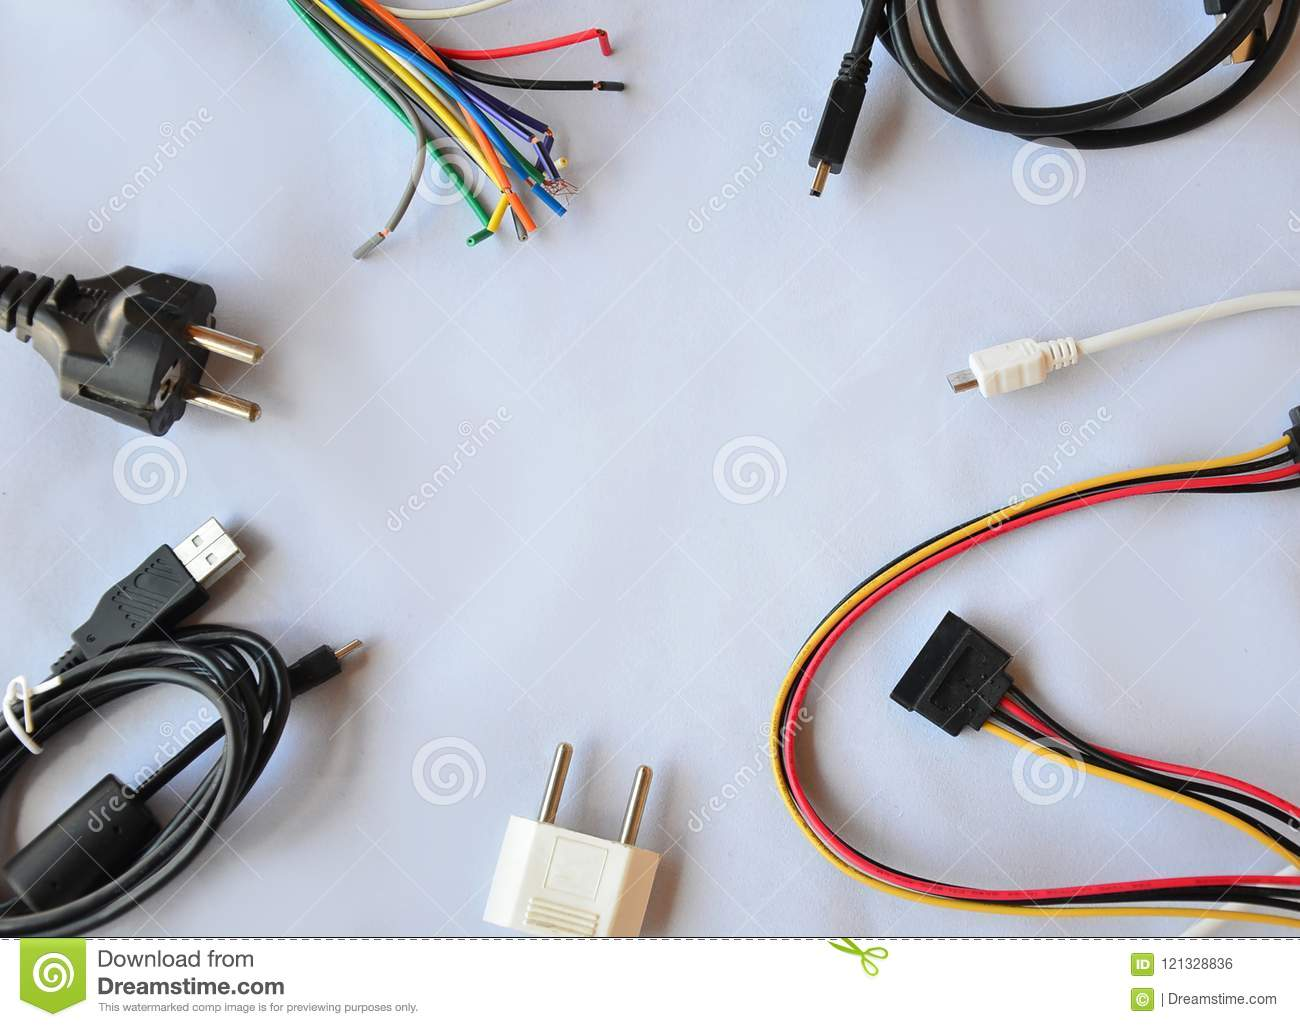 Wires on a white background, wire, cable, machinery.